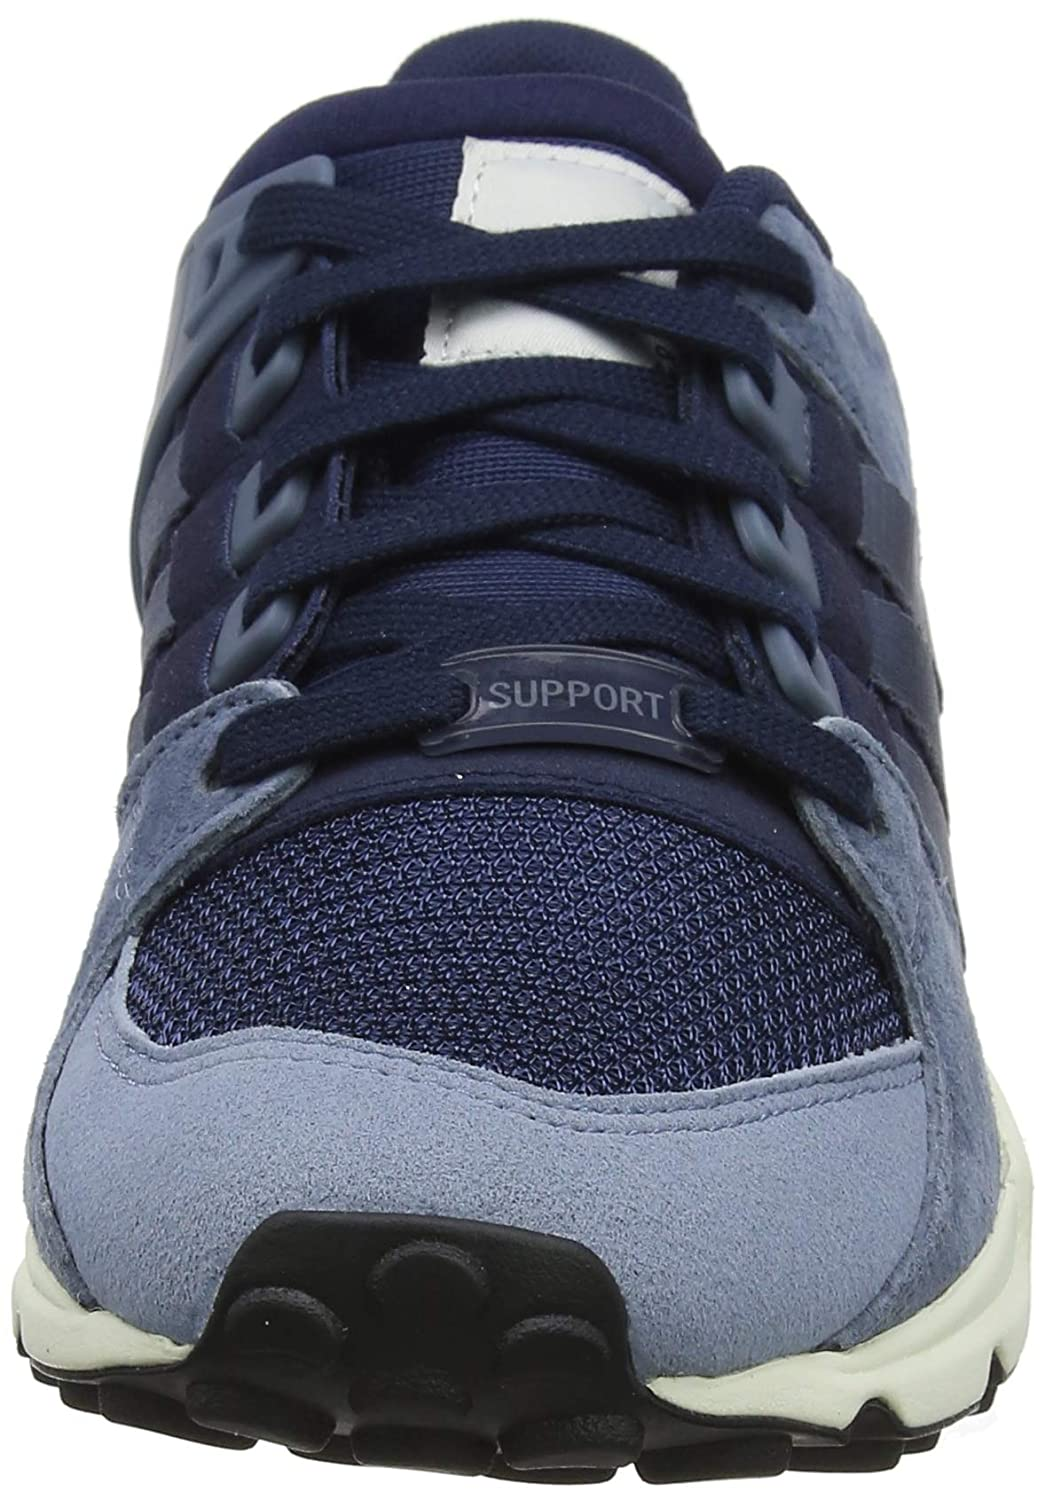 on sale 91ded 2c436 adidas Mens EQT Support Rf Low-Top Sneakers Amazon.co.uk Sho